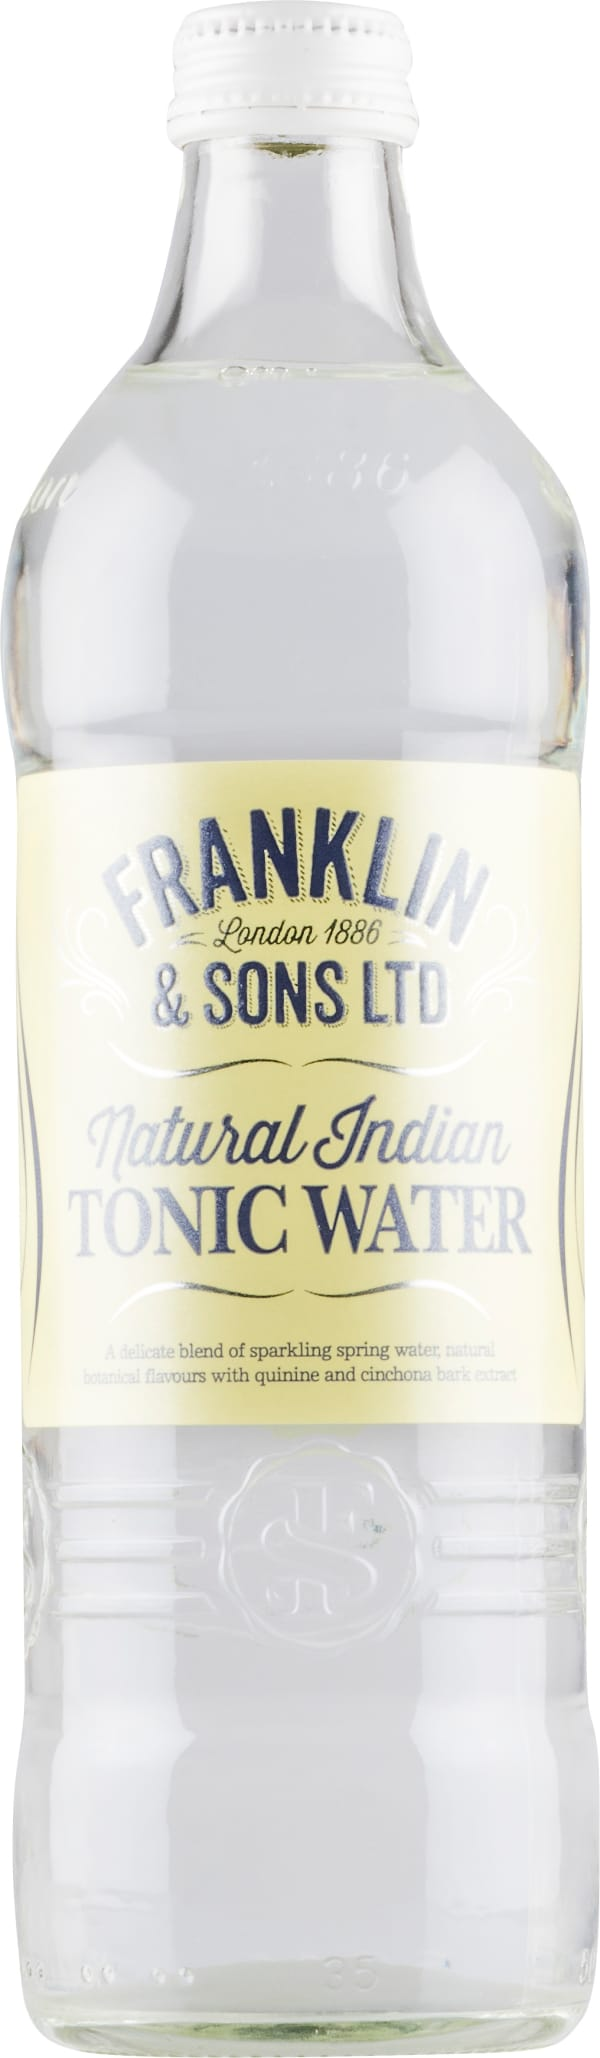 Franklin & Sons Natural Indian Tonic Water